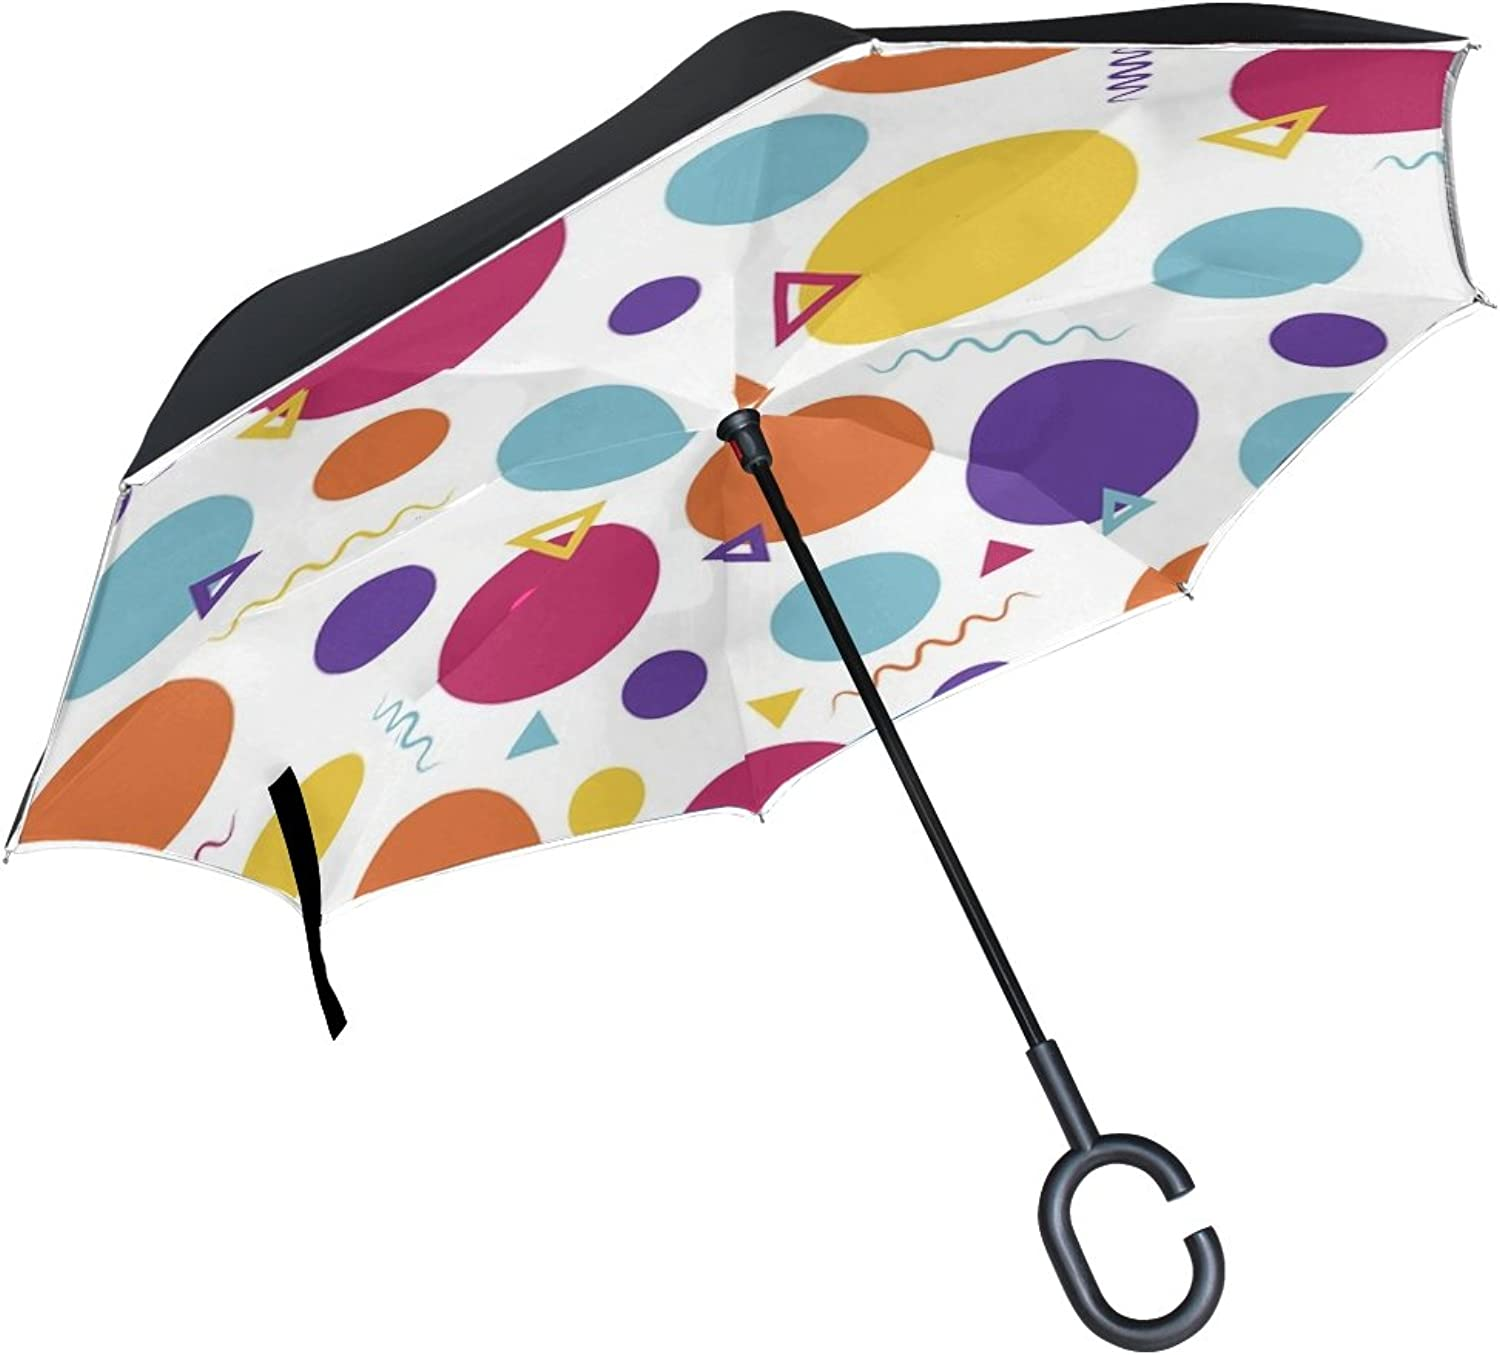 Double Layer Ingreened Polka Dot Memphis Multicolor Umbrellas Reverse Folding Umbrella Windproof Uv Predection Big Straight Umbrella for Car Rain Outdoor with CShaped Handle